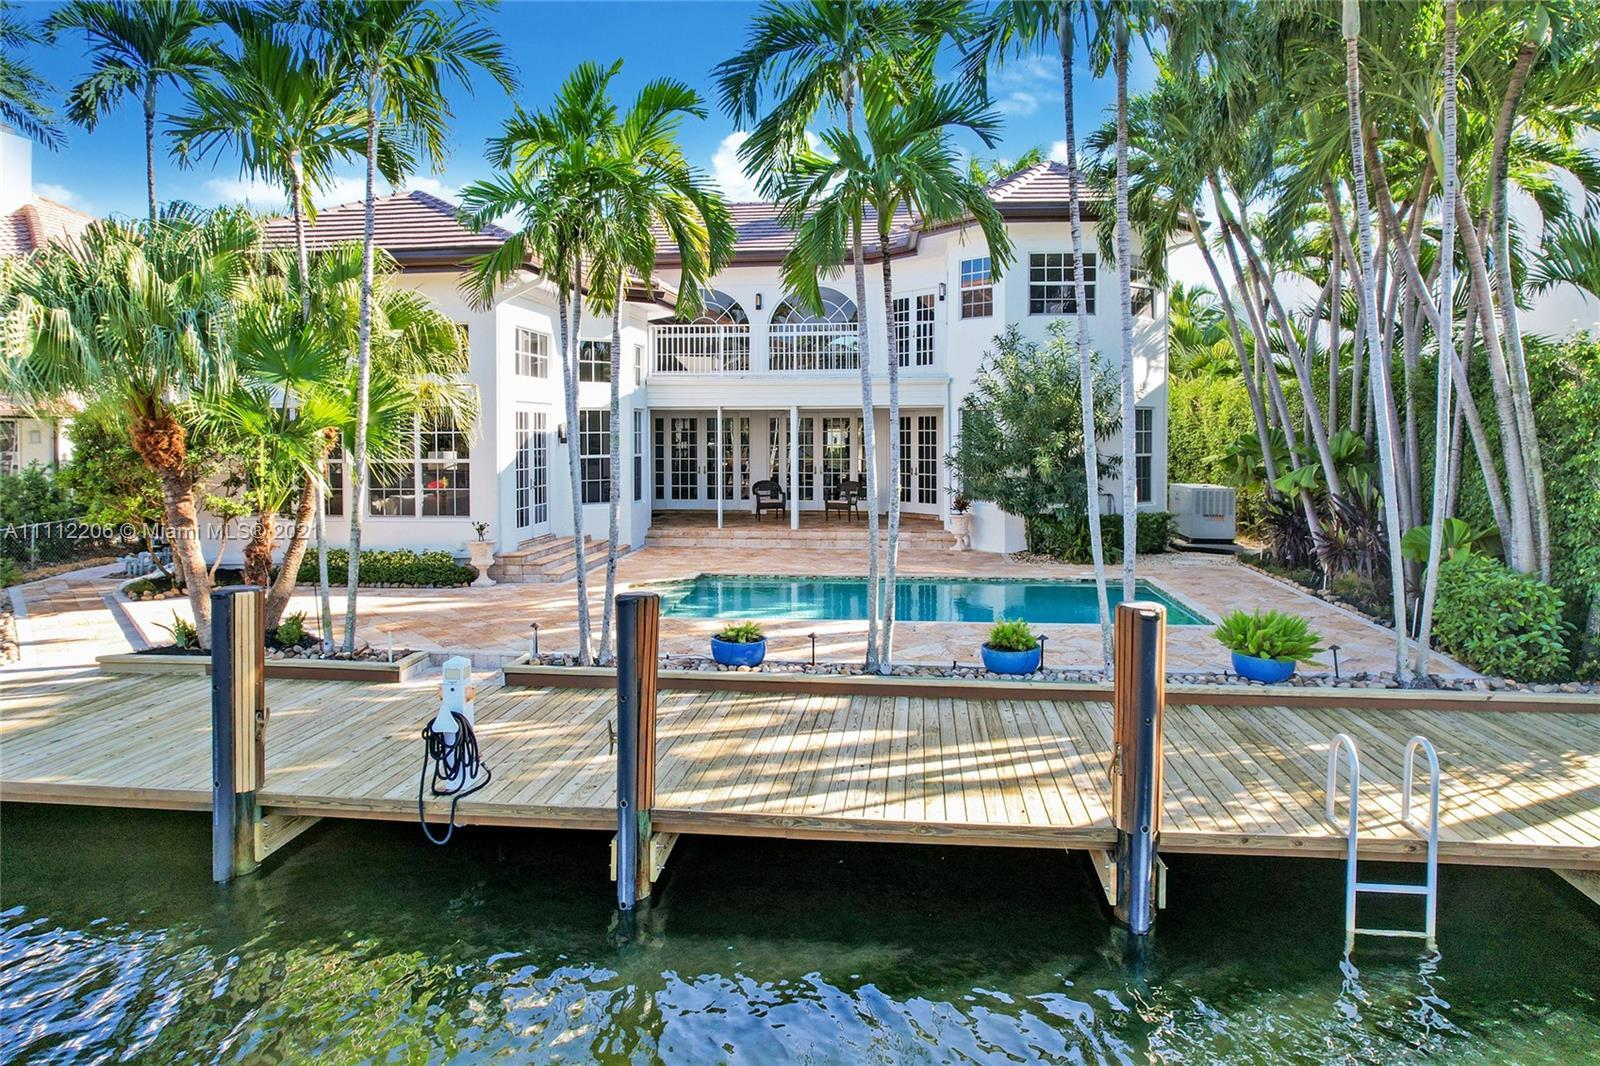 The best value in Seven Isles/Las Olas for a meticulously maintained custom home with 76' on the wat